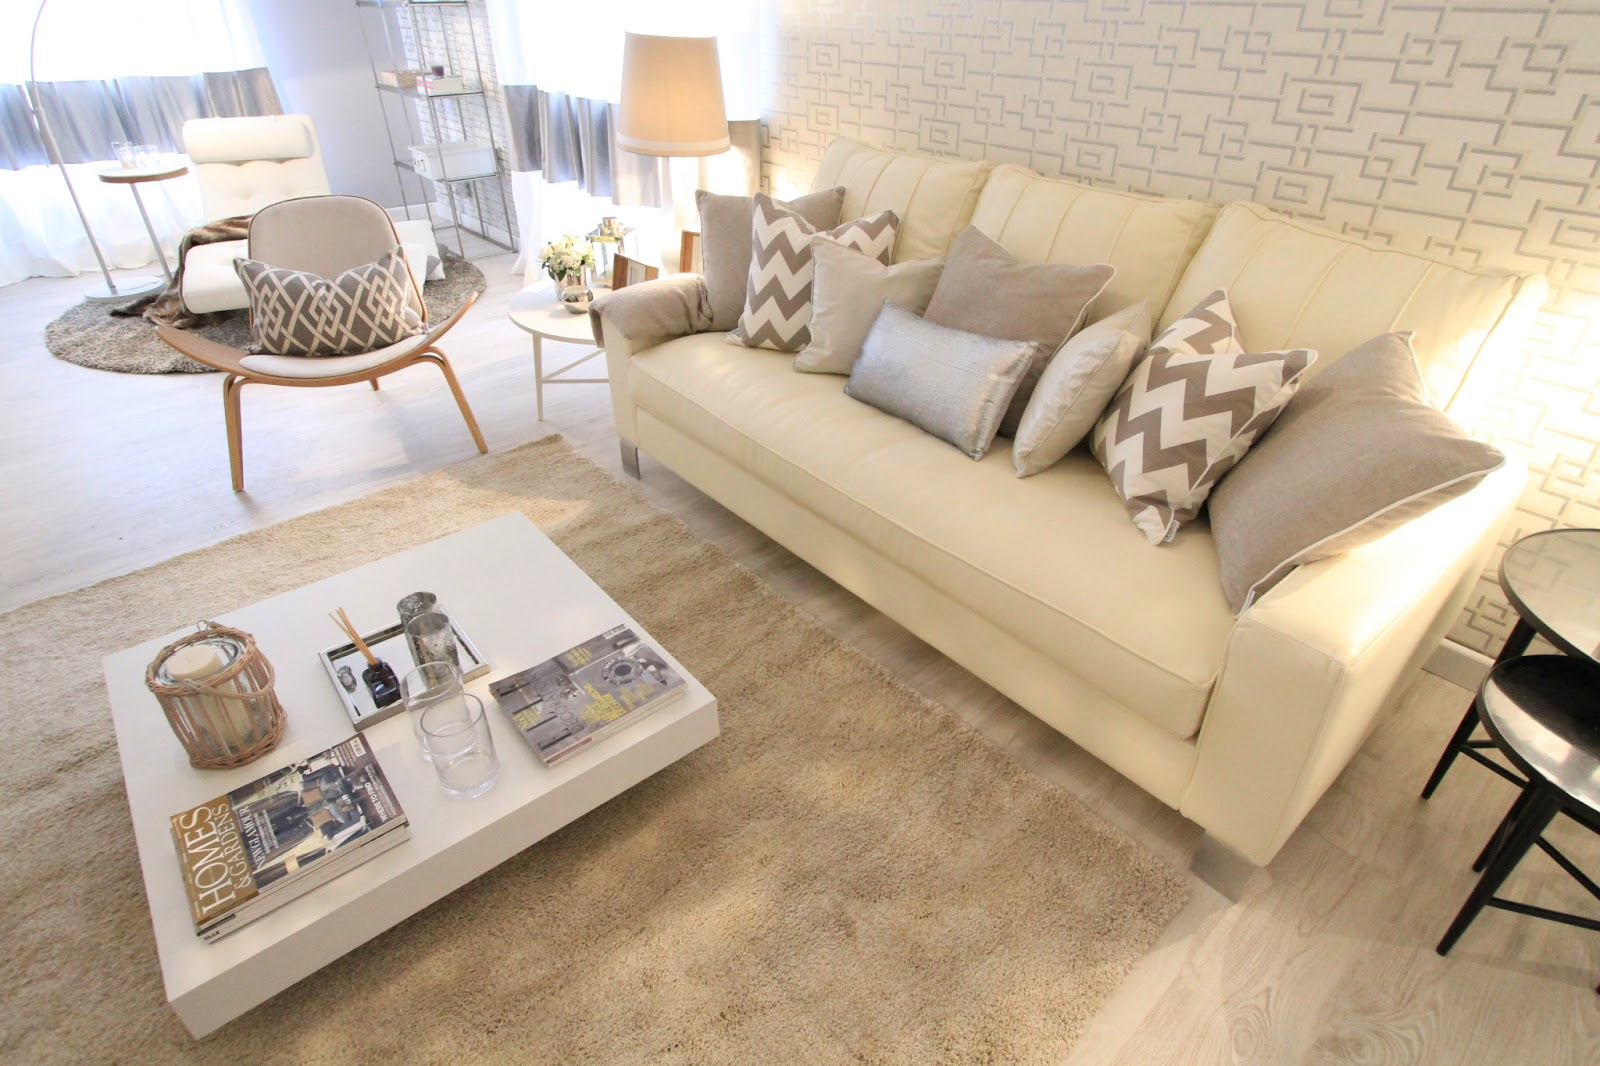 Querido mudei a casa tv show before after part ii - Sofas en leroy merlin ...